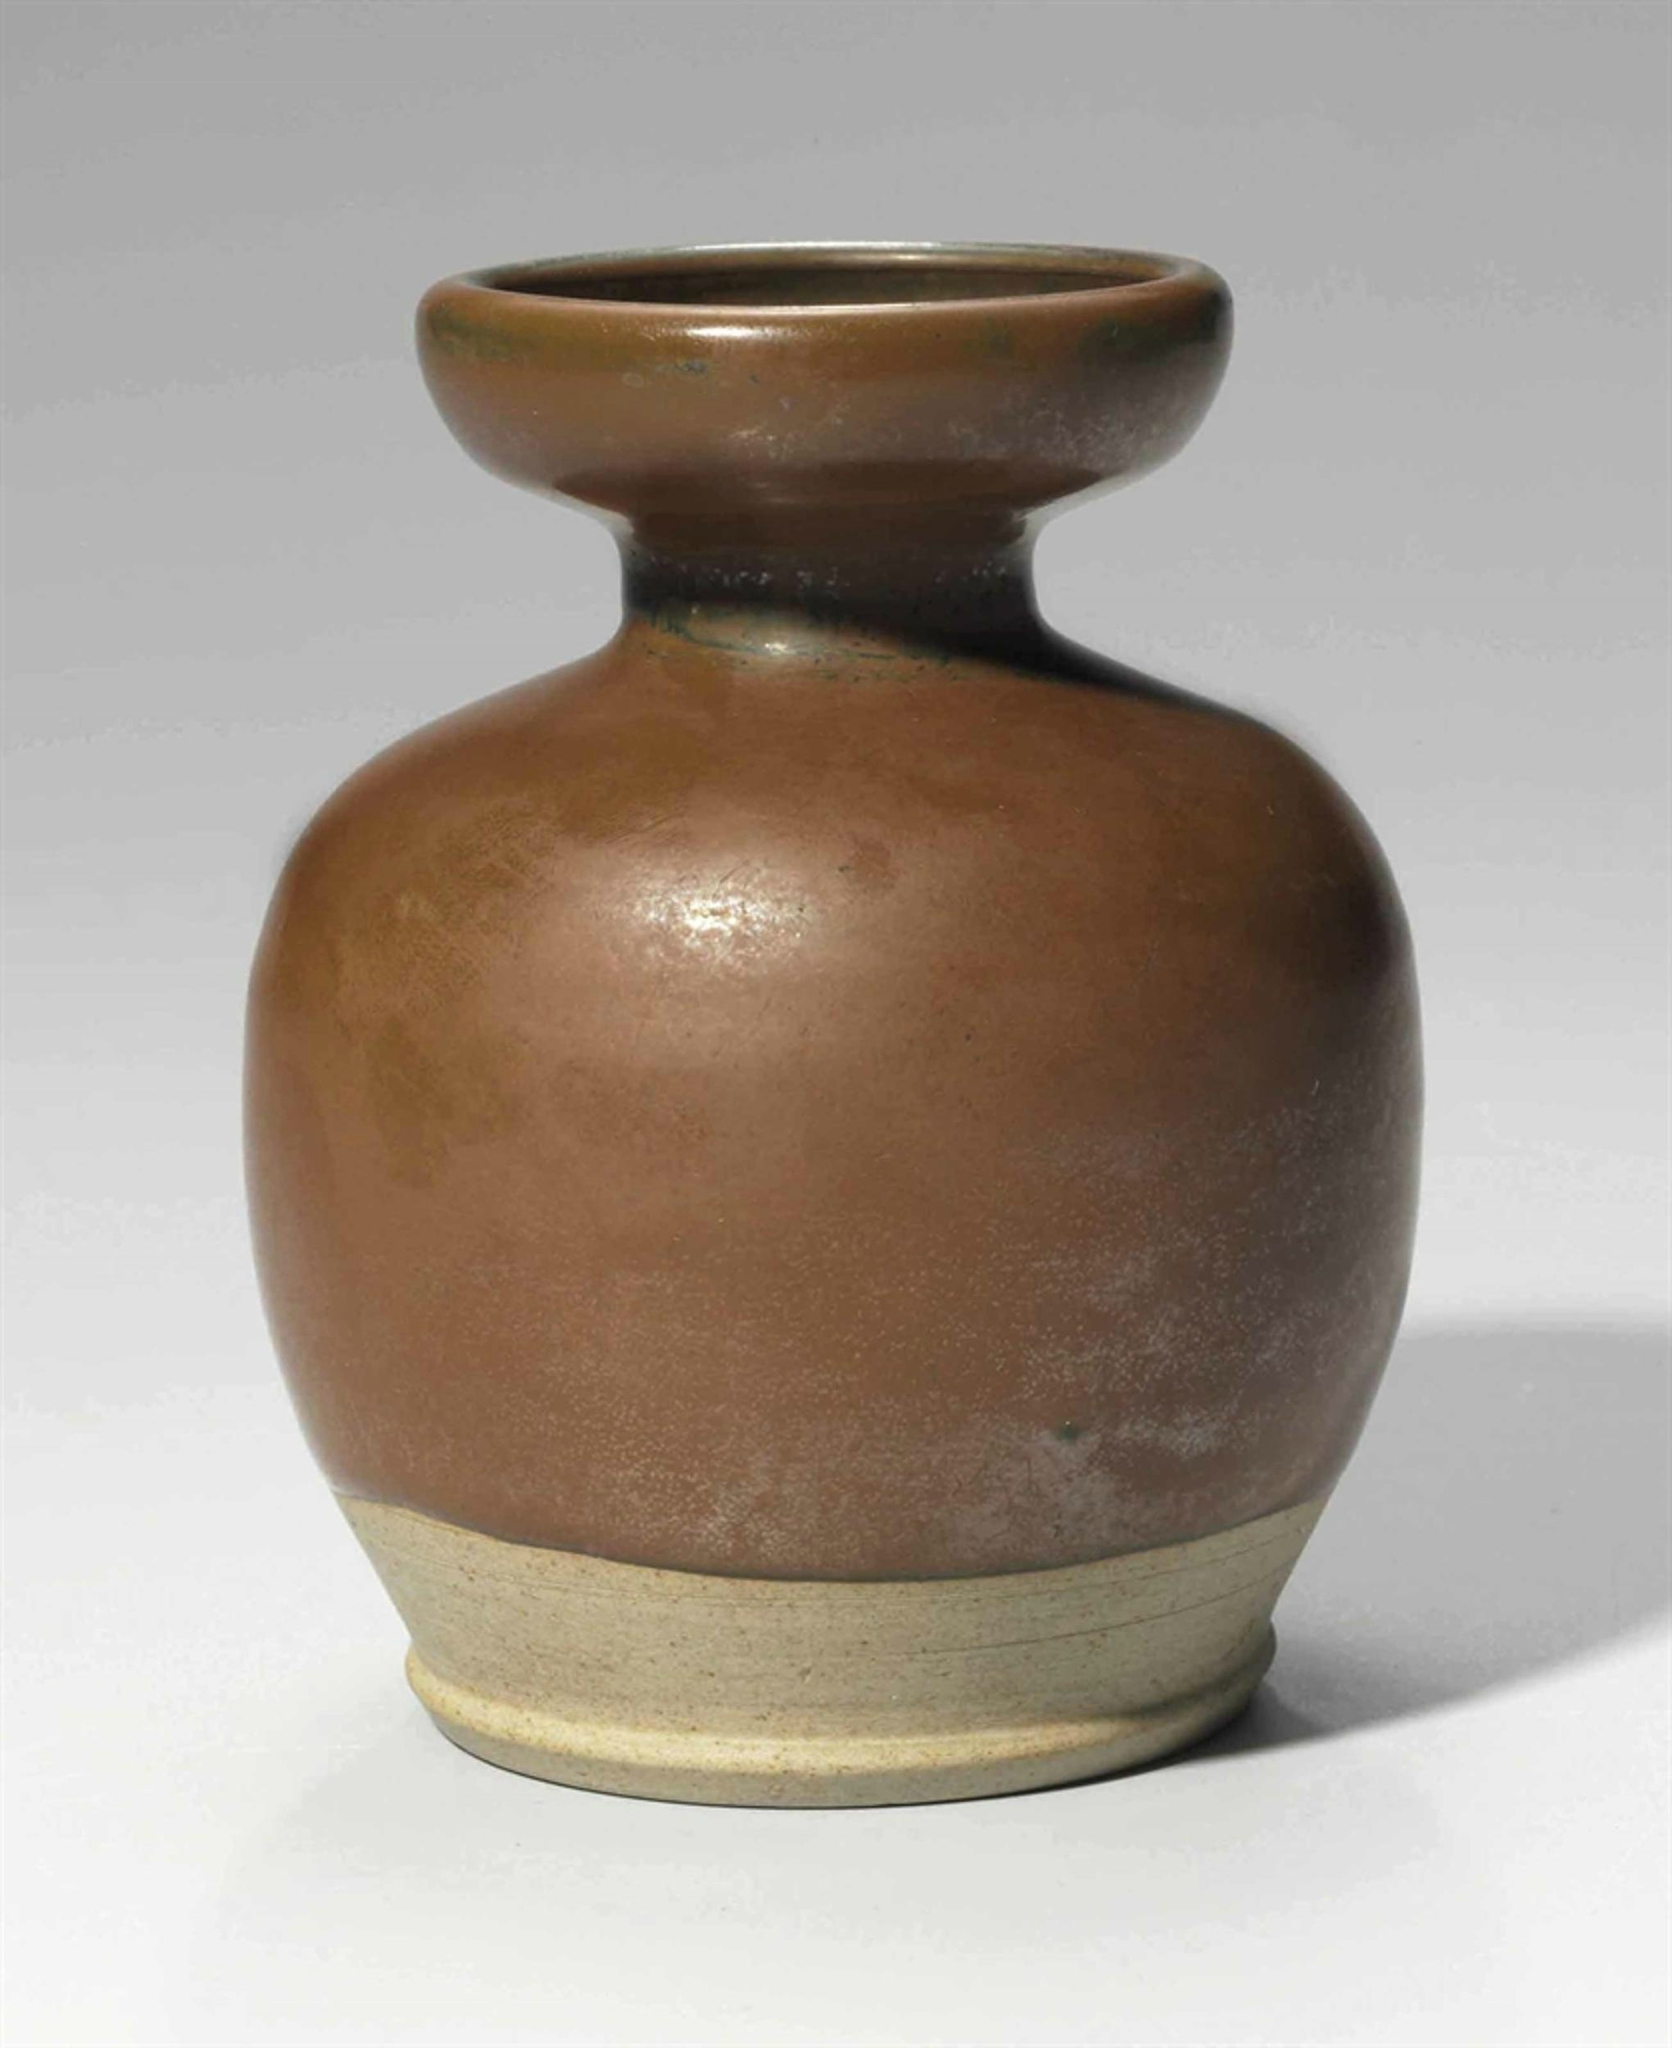 An unusual small Yaozhou russet-glazed jar, Northern Song dynasty, 11th-12th century